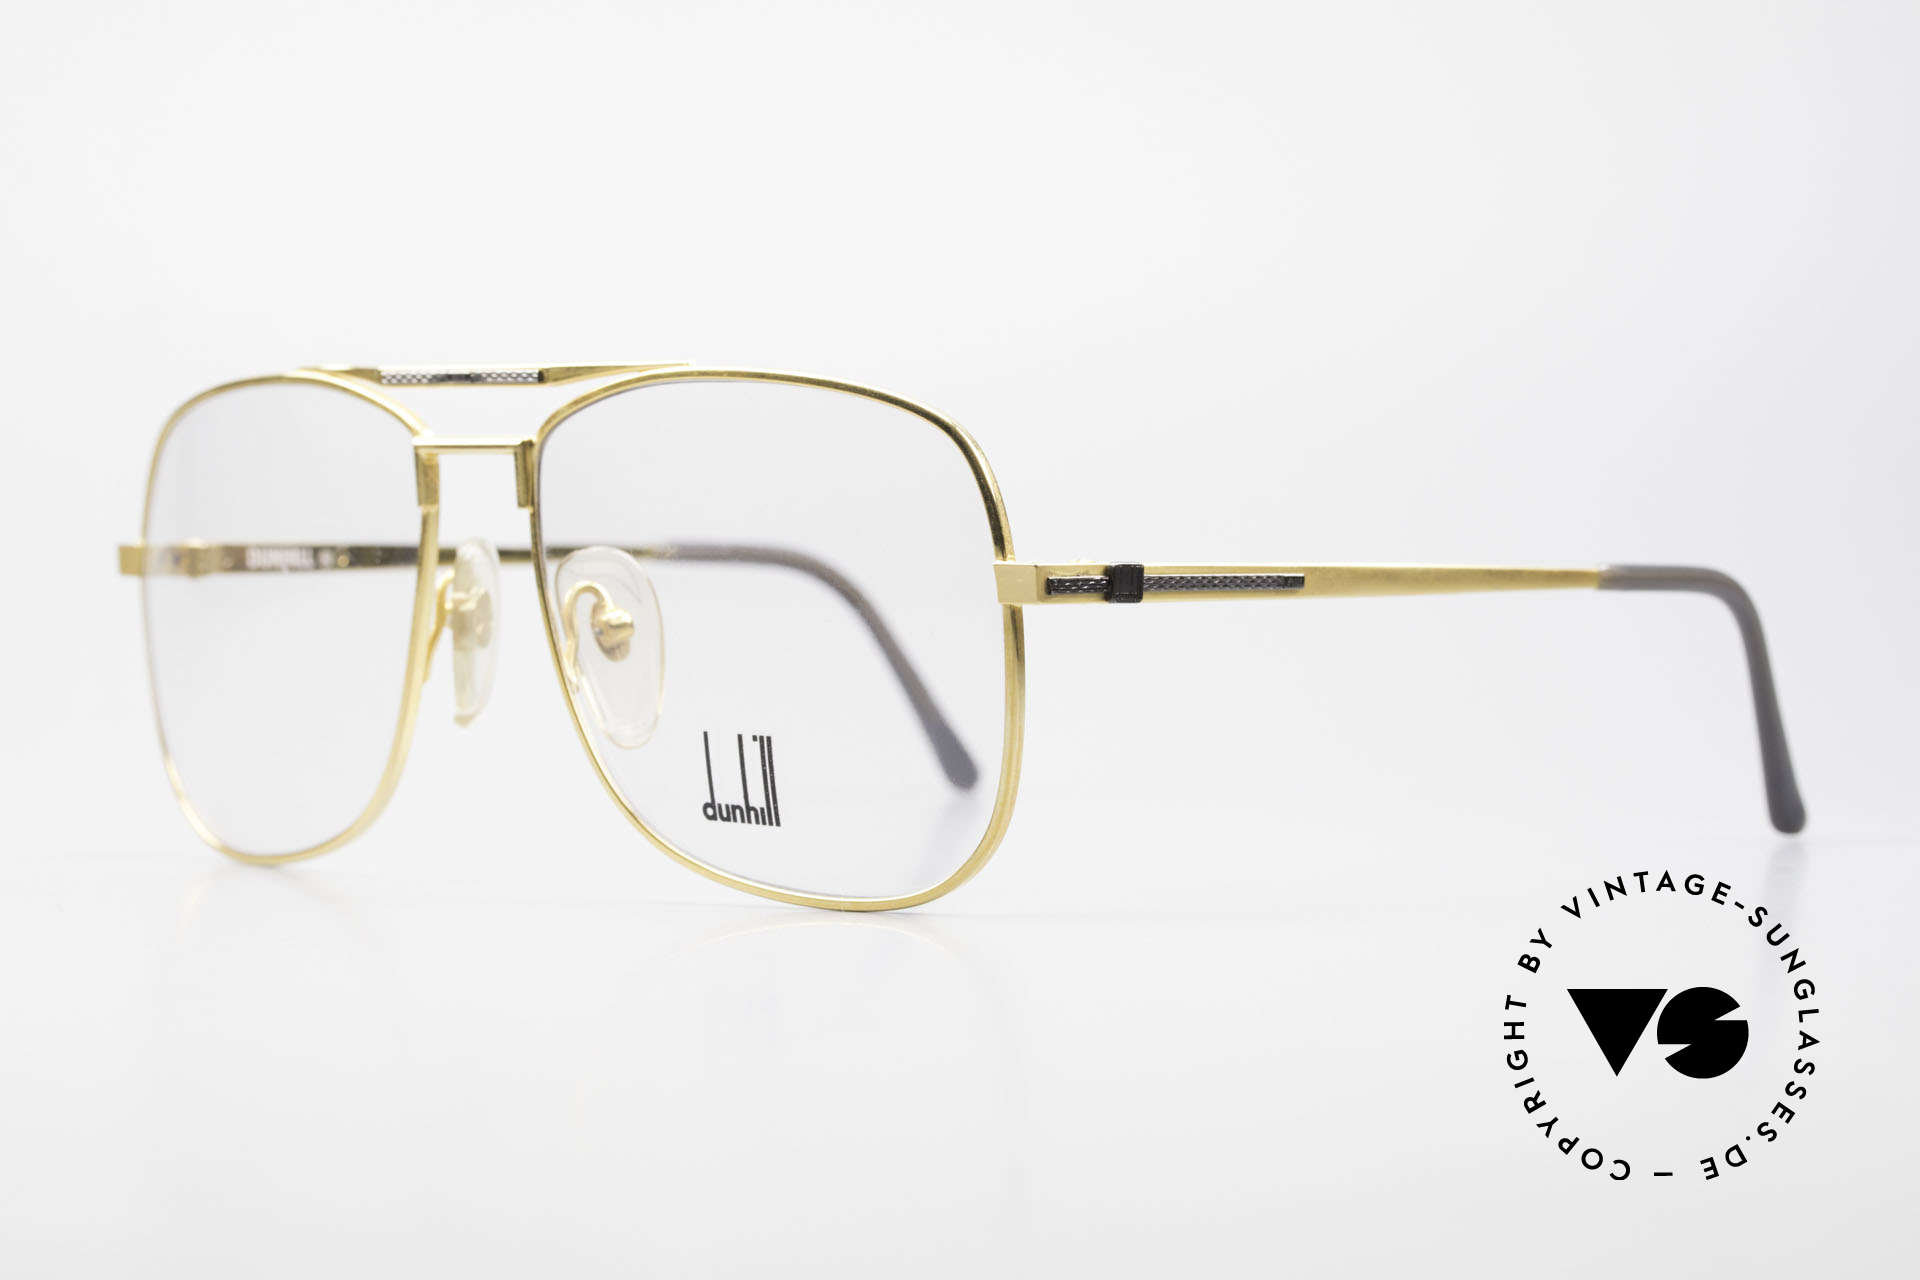 Dunhill 6038 Gold-Plated Titanium Frame, manufacturing costs in 1986 = 120,- DM (app. 75 USD), Made for Men